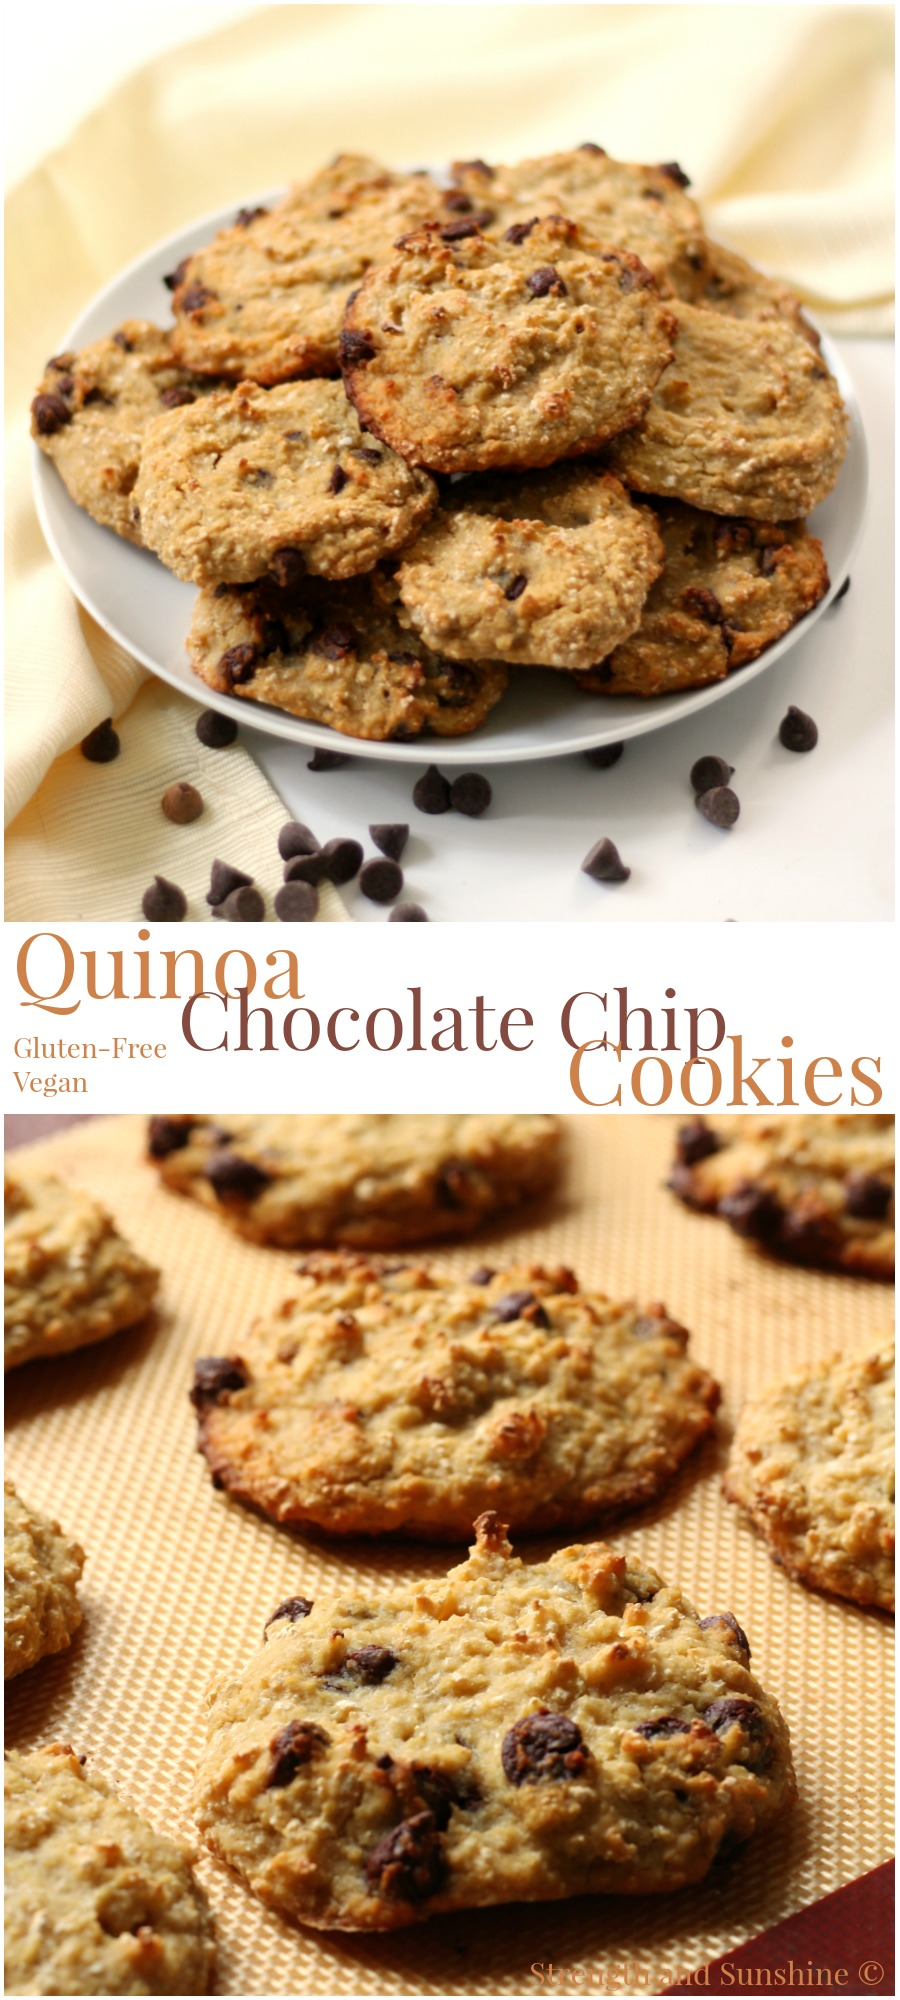 Quinoa Chocolate Chip Cookies | Strength and Sunshine @RebeccaGF666 The classic chocolate chip cookie with the protein punch of quinoa. Healthy, gluten-free, vegan, quinoa chocolate chip cookies that will fool anyone into thinking they're eating a decadent dessert recipe. These call for a double batch!